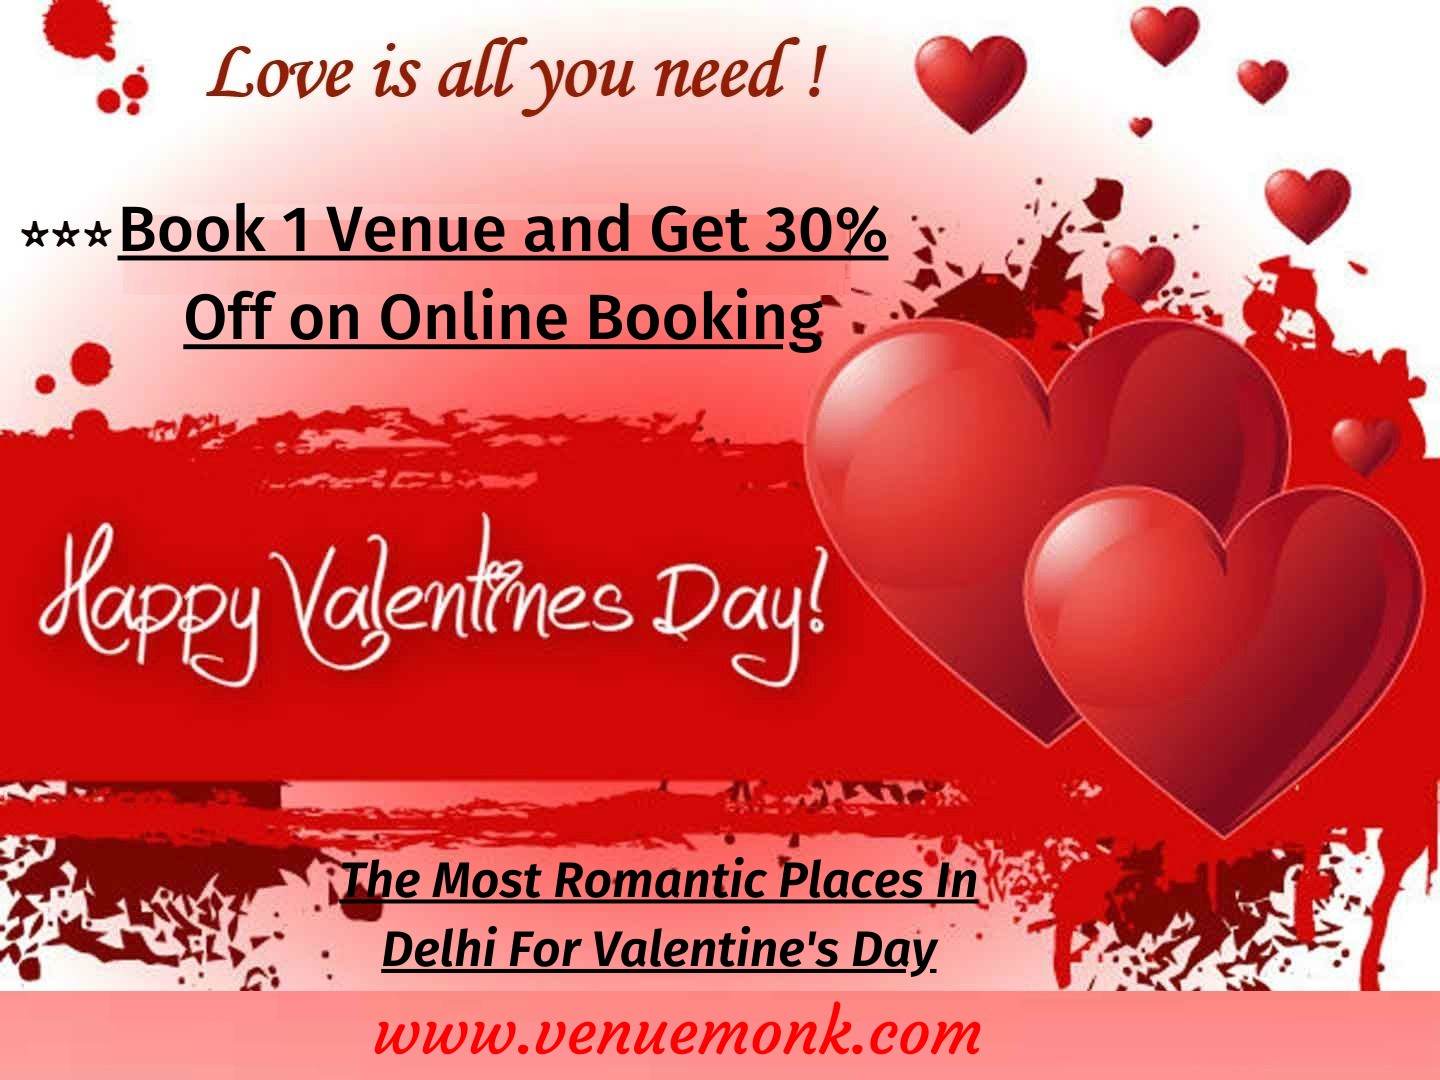 The Most Romantic Places In Delhi For Valentine's Day